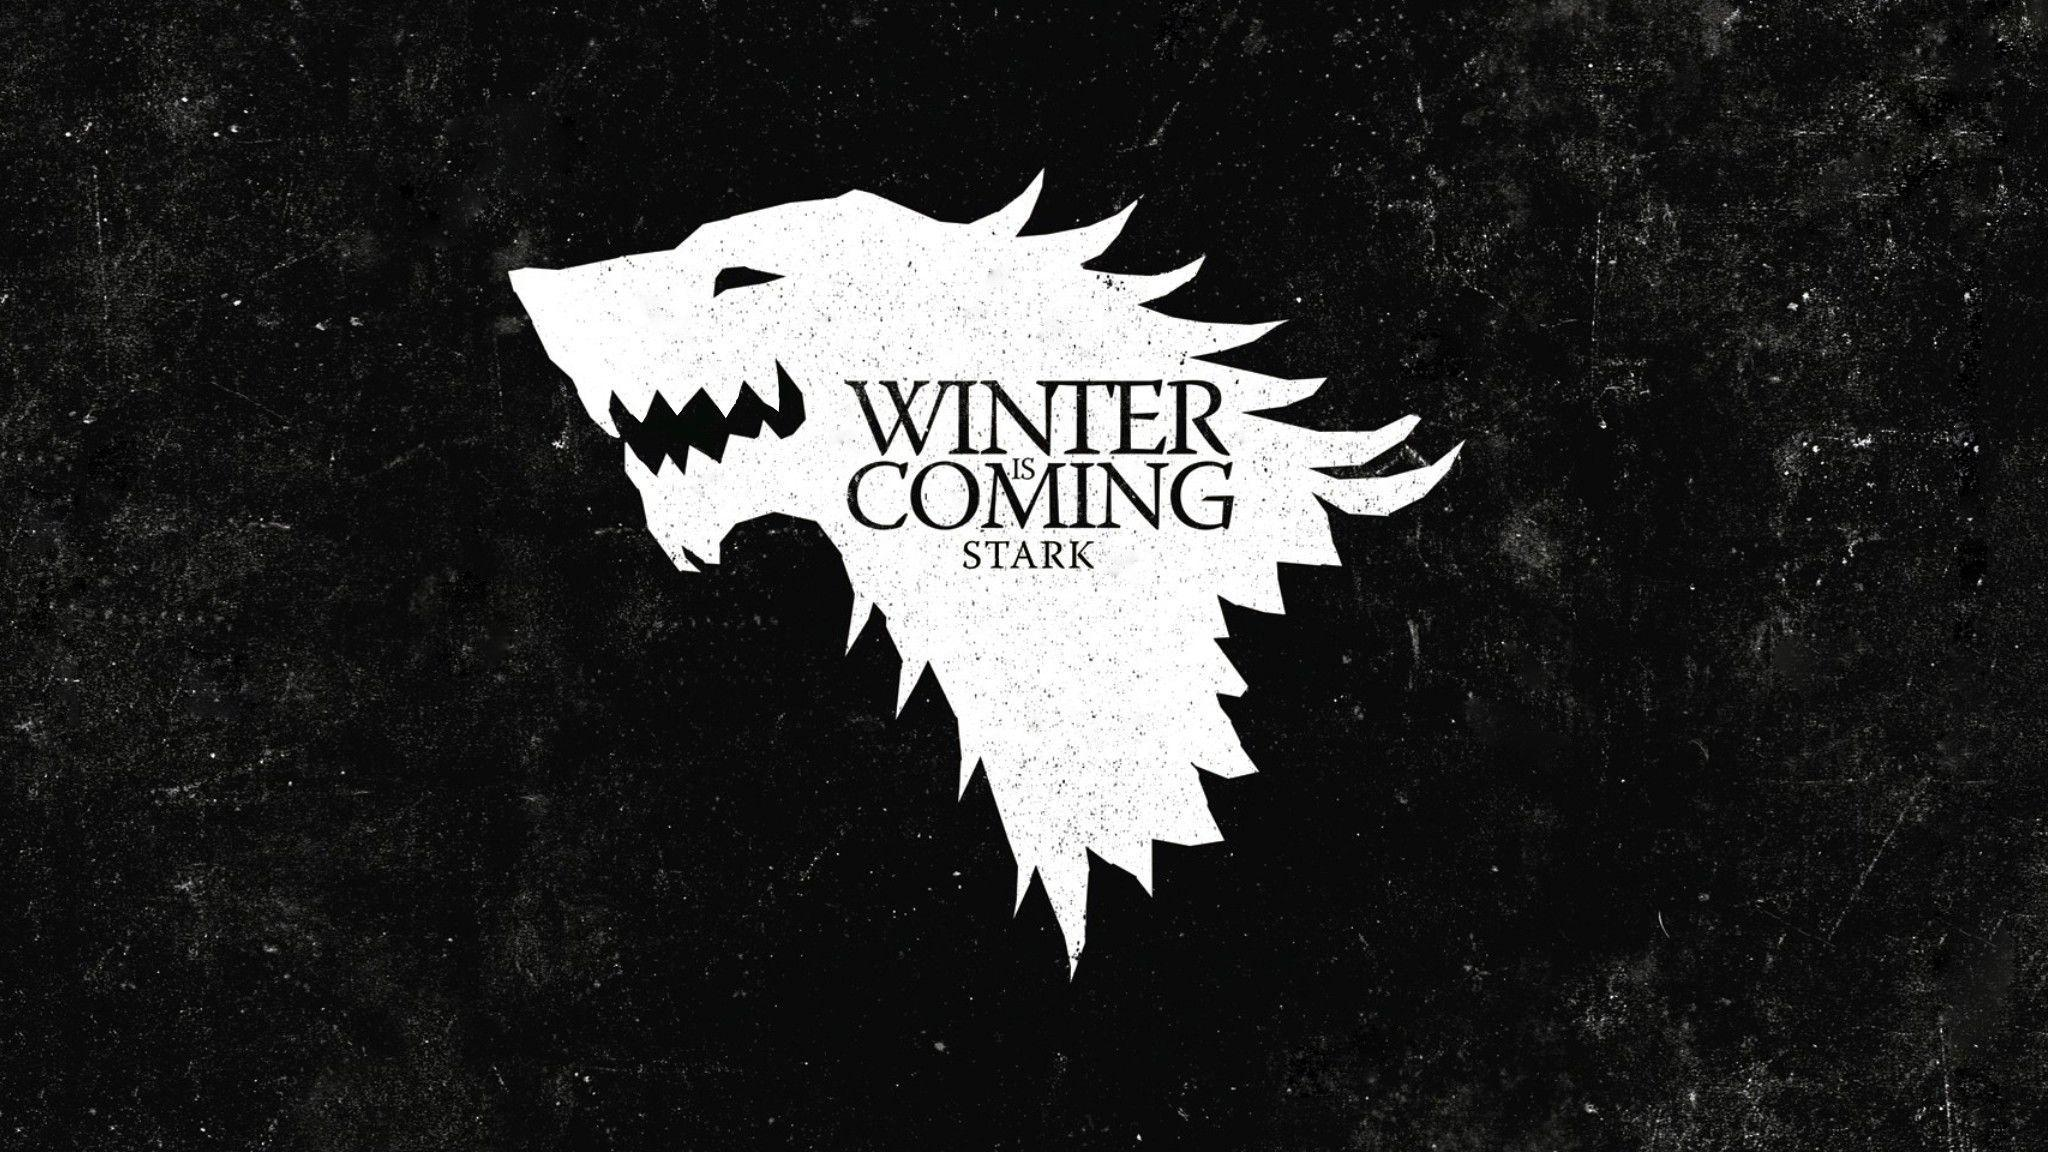 House Stark Wallpapers - Wallpaper Cave House Stark Wallpaper Android